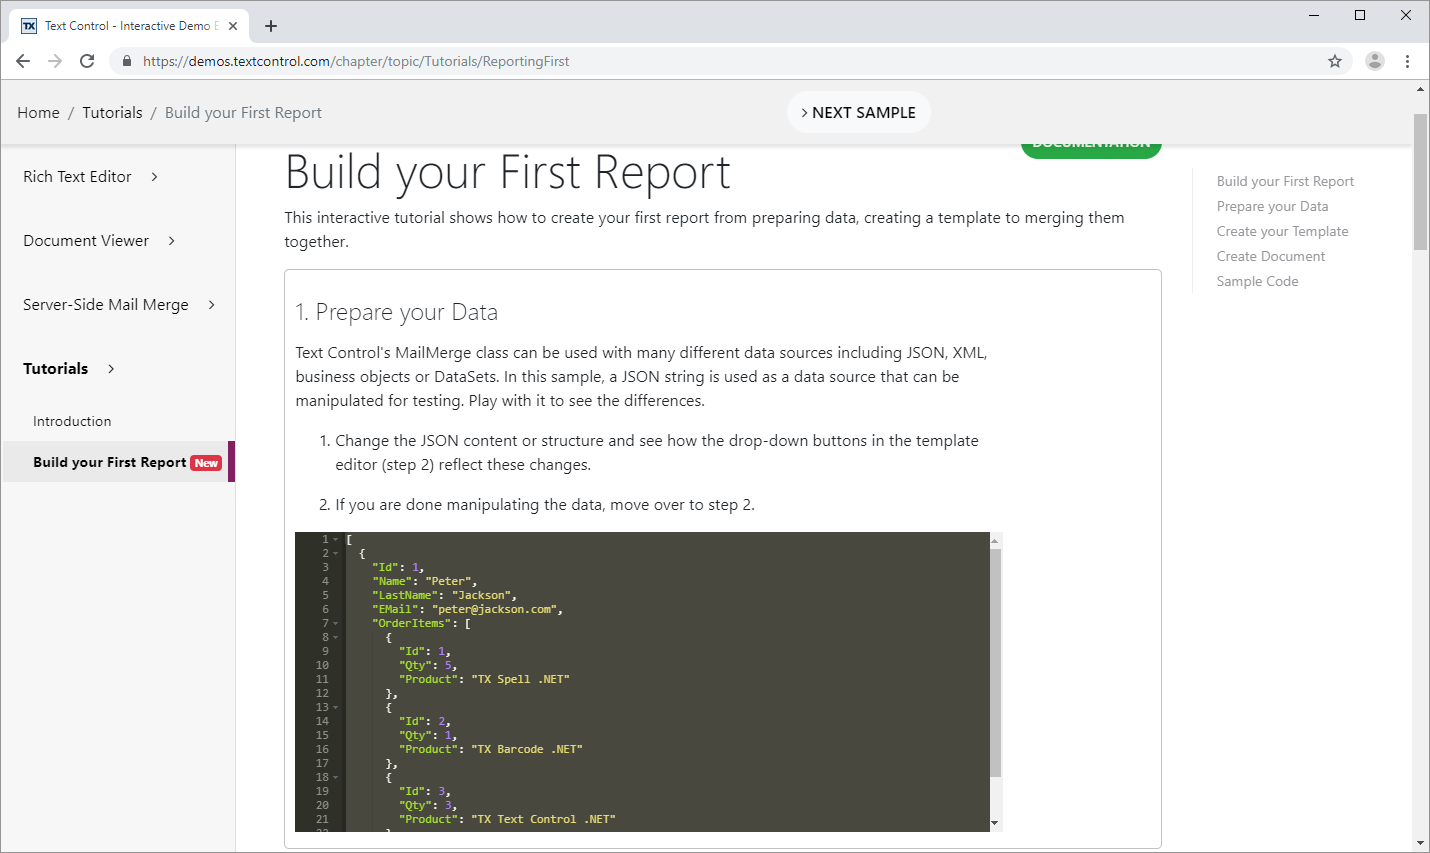 New Online Sample: Build your First Report